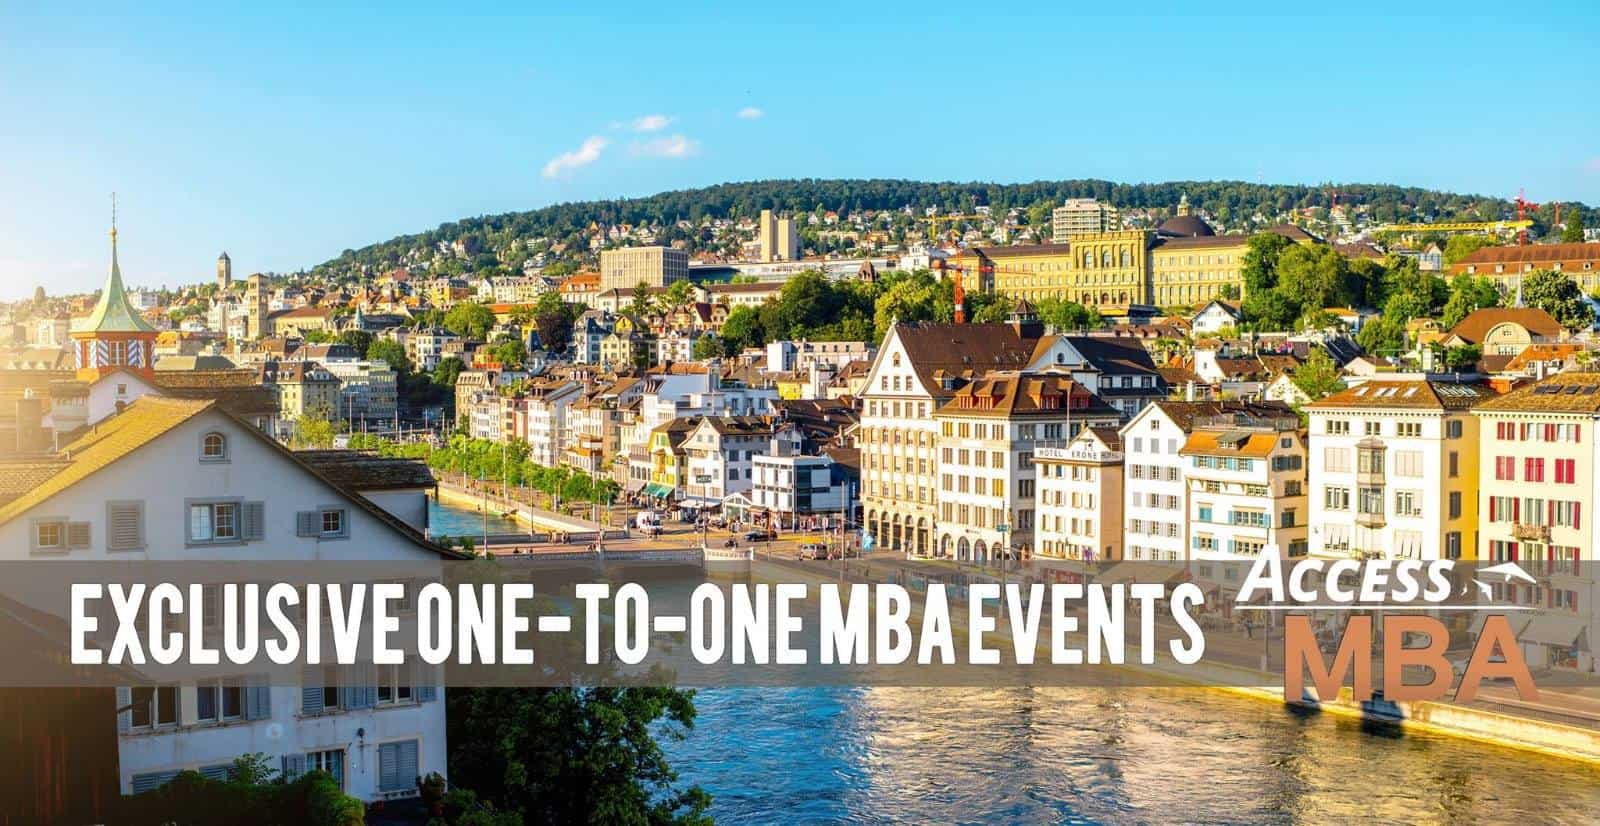 MBA events in Zurich